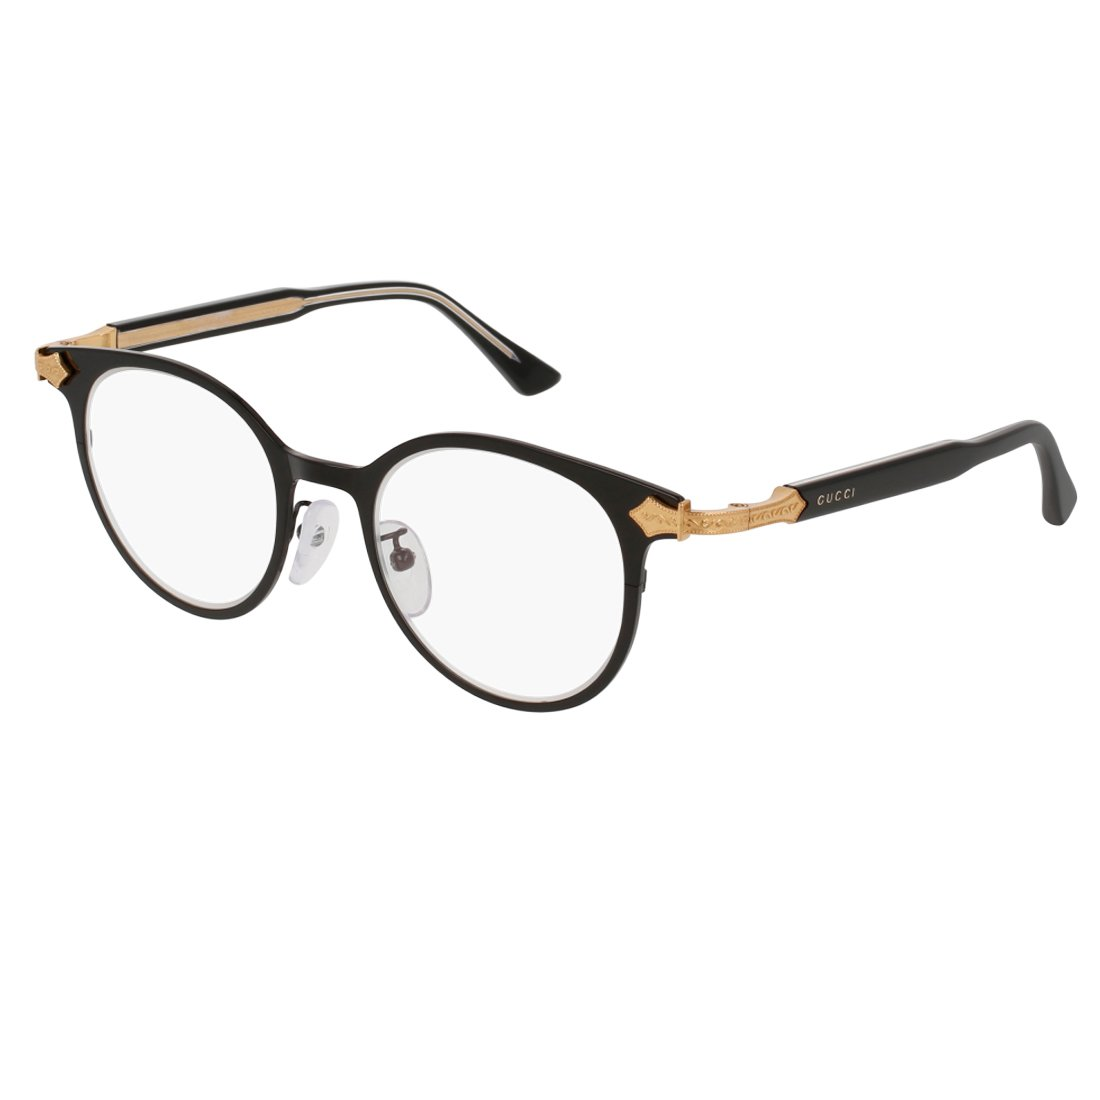 Gucci GG 0068O 001 Black Gold Titanium Round Eyeglasses 49mm